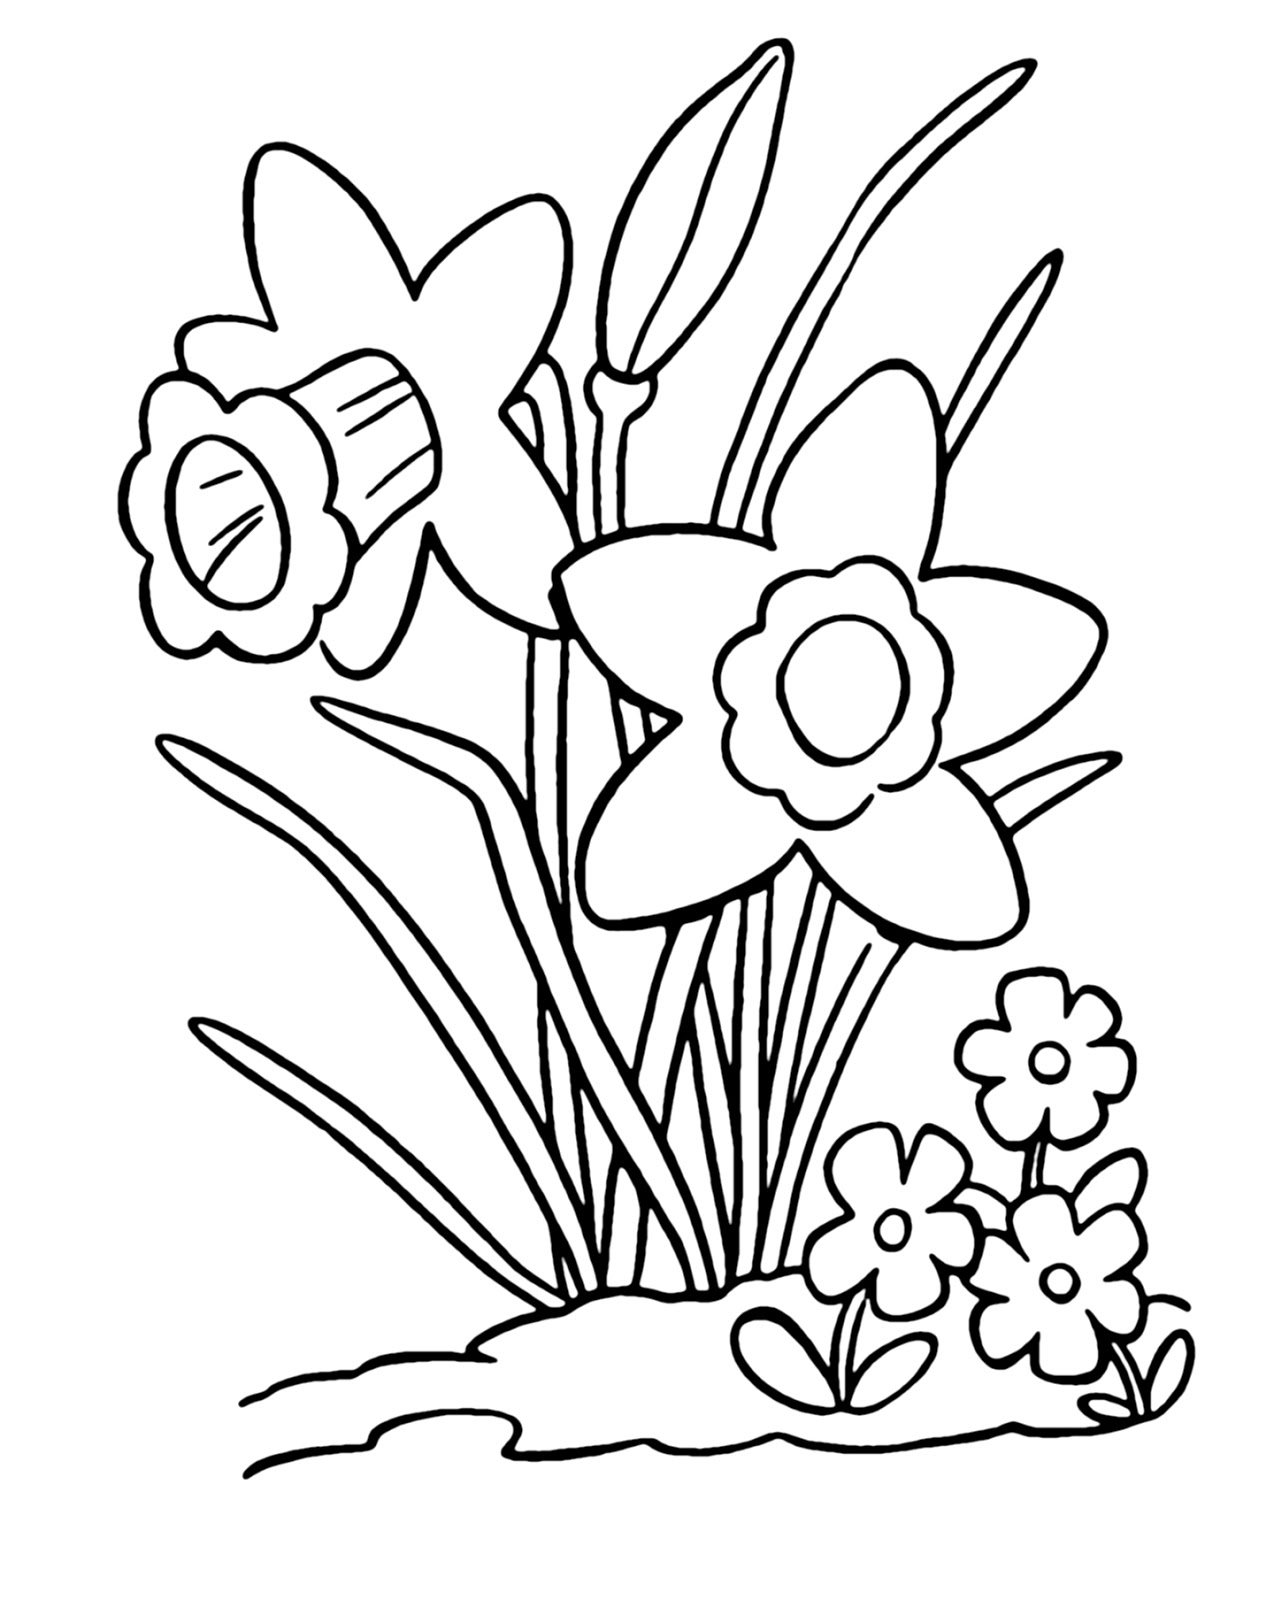 coloring clipart for kids daffodil coloring pages best coloring pages for kids clipart kids coloring for